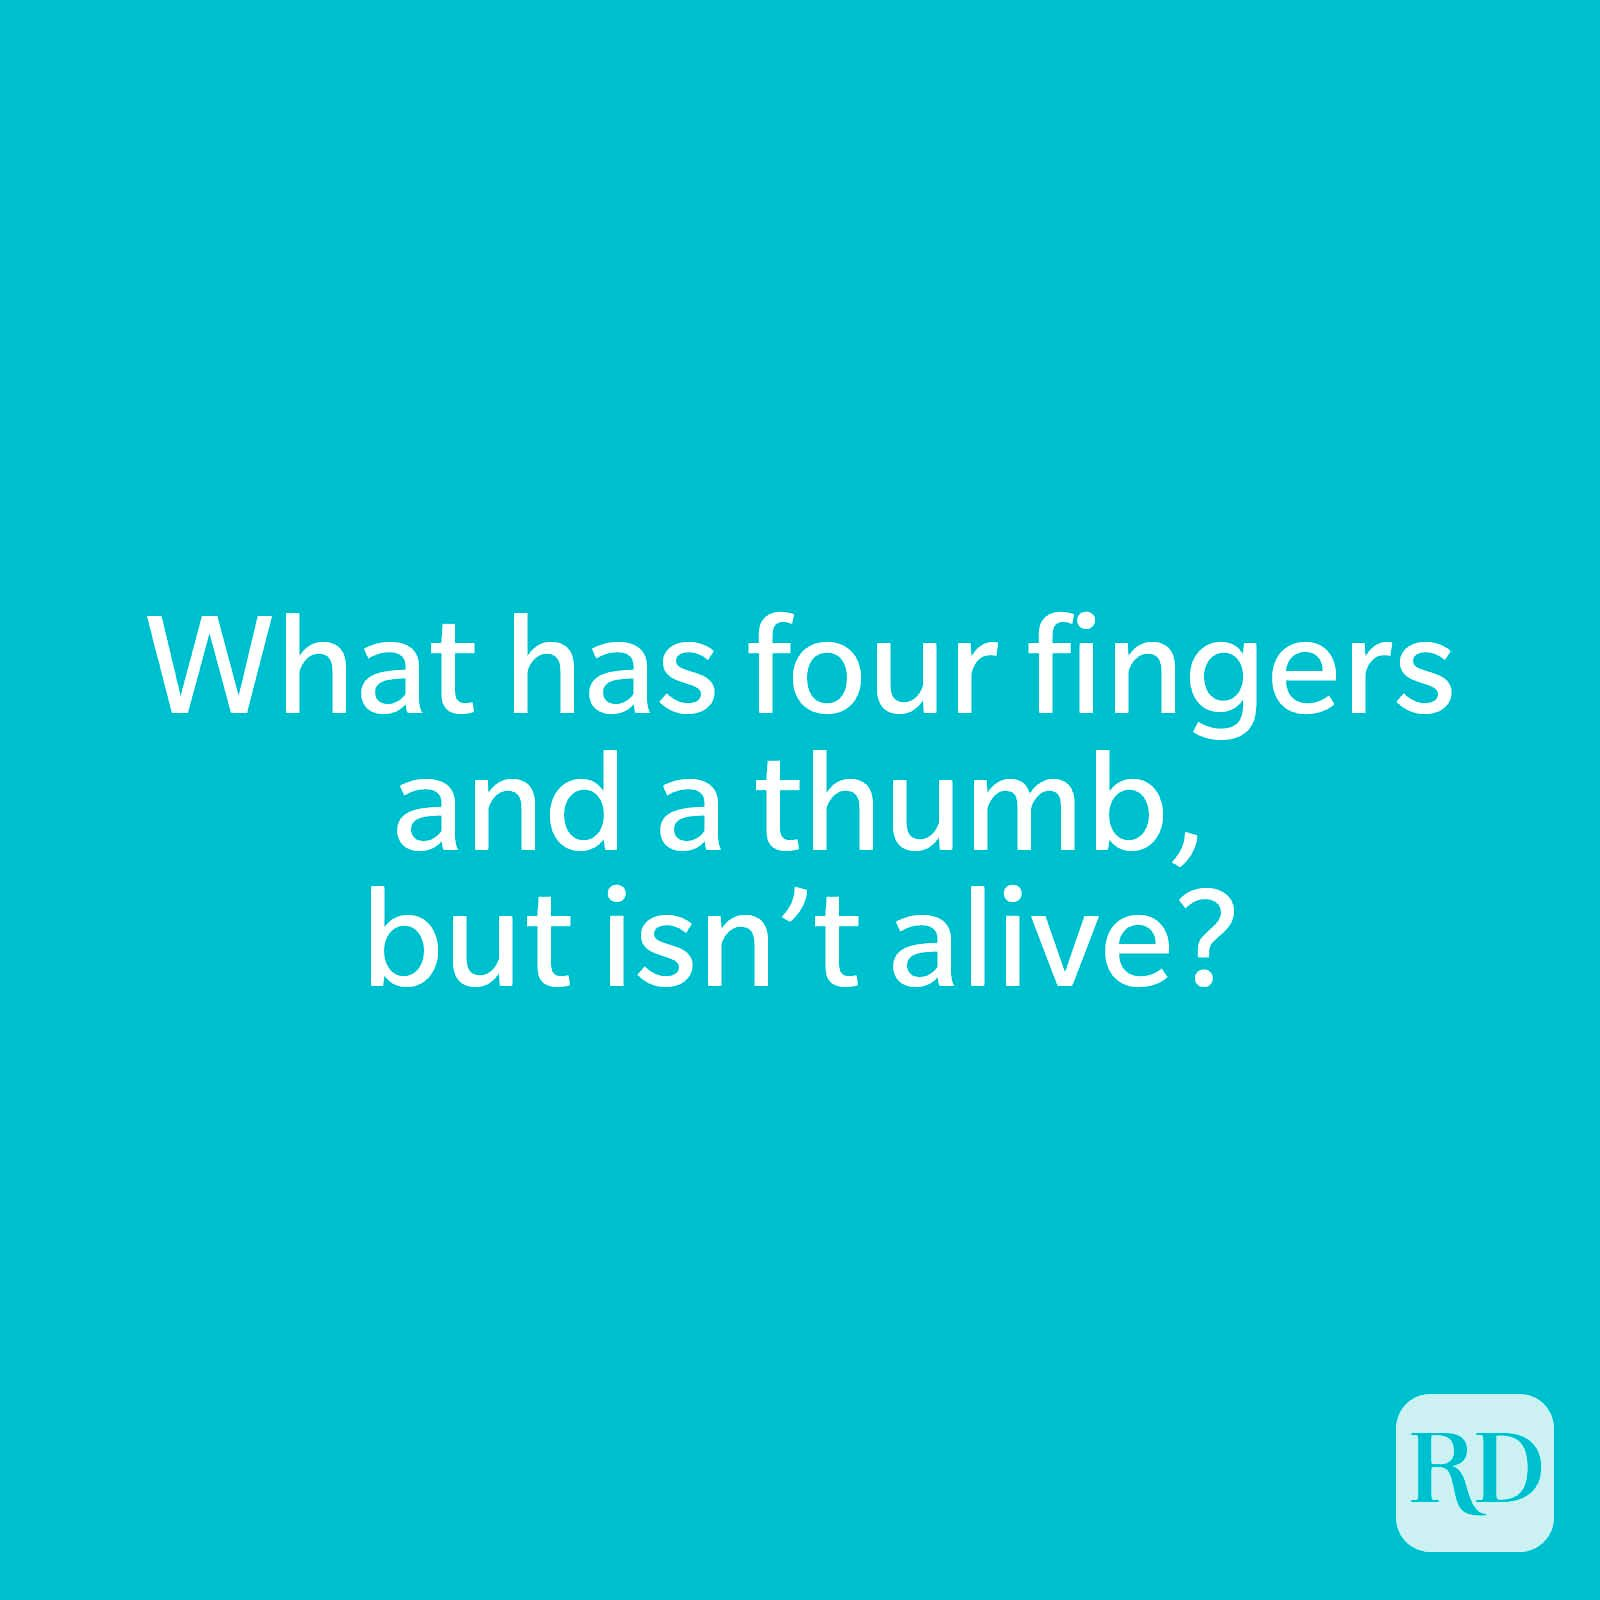 What has four fingers and a thumb, but isn't alive?